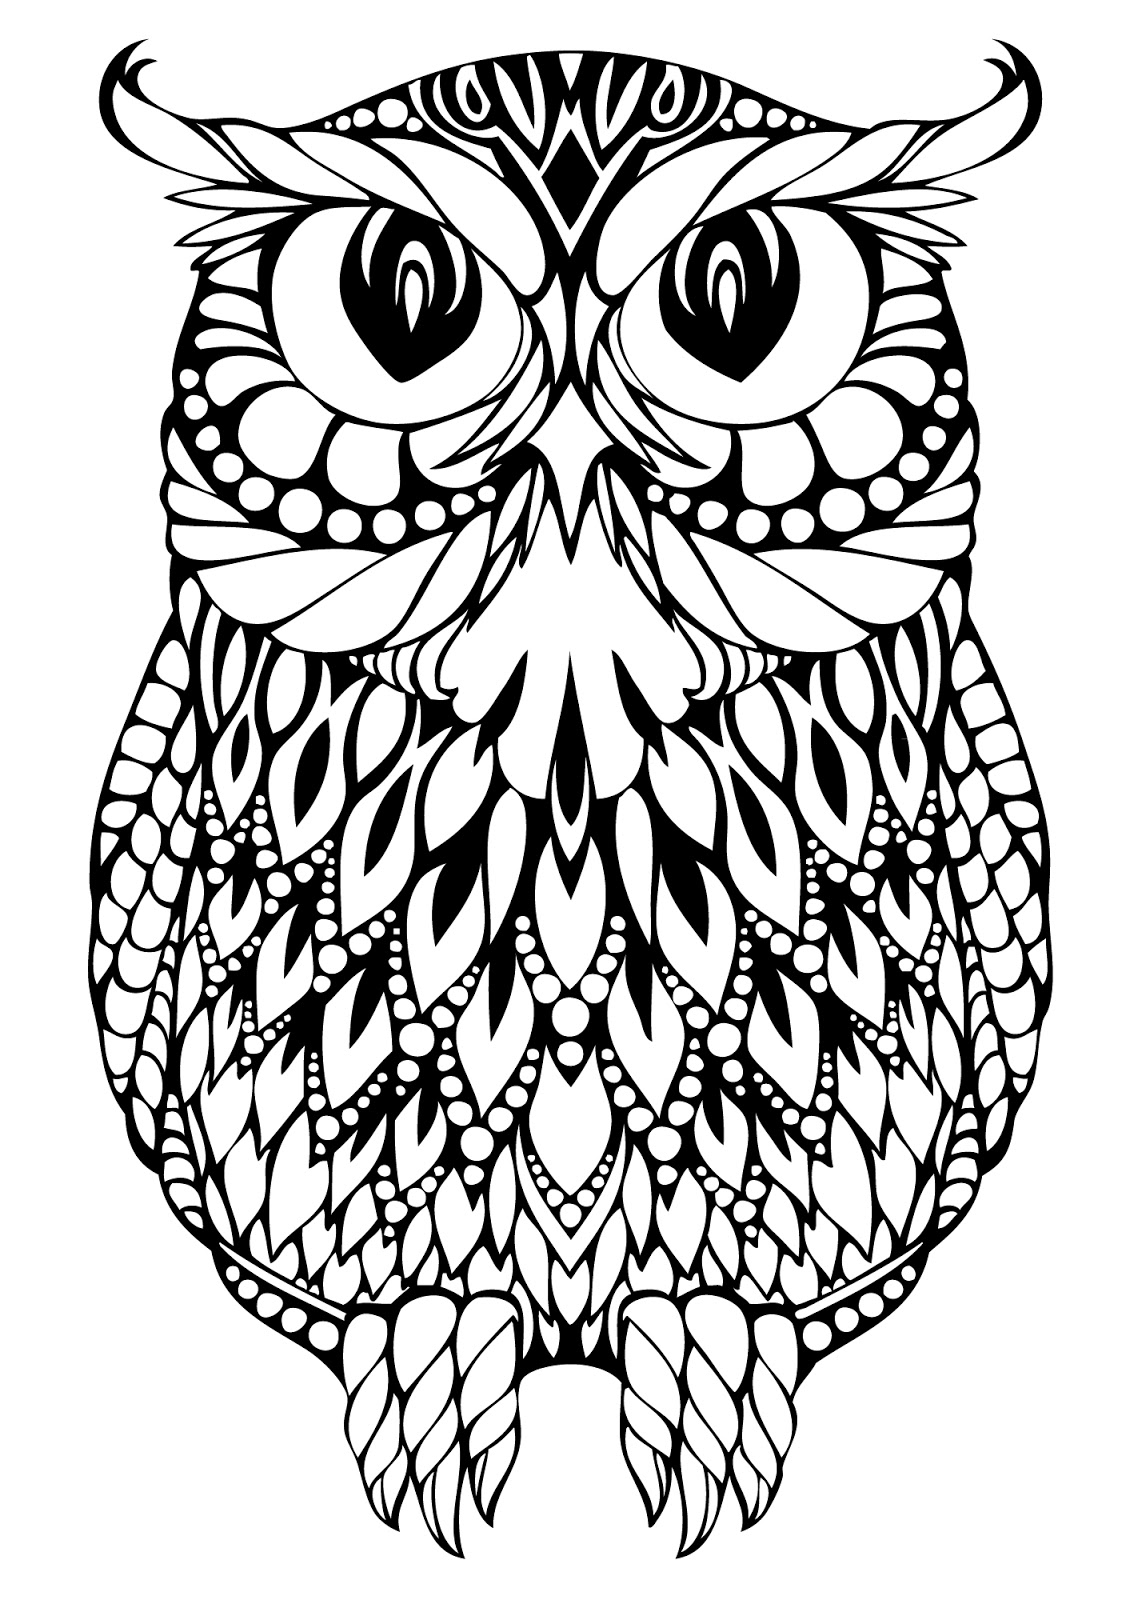 coloring prints for adults adult coloring pages animals best coloring pages for kids for adults coloring prints